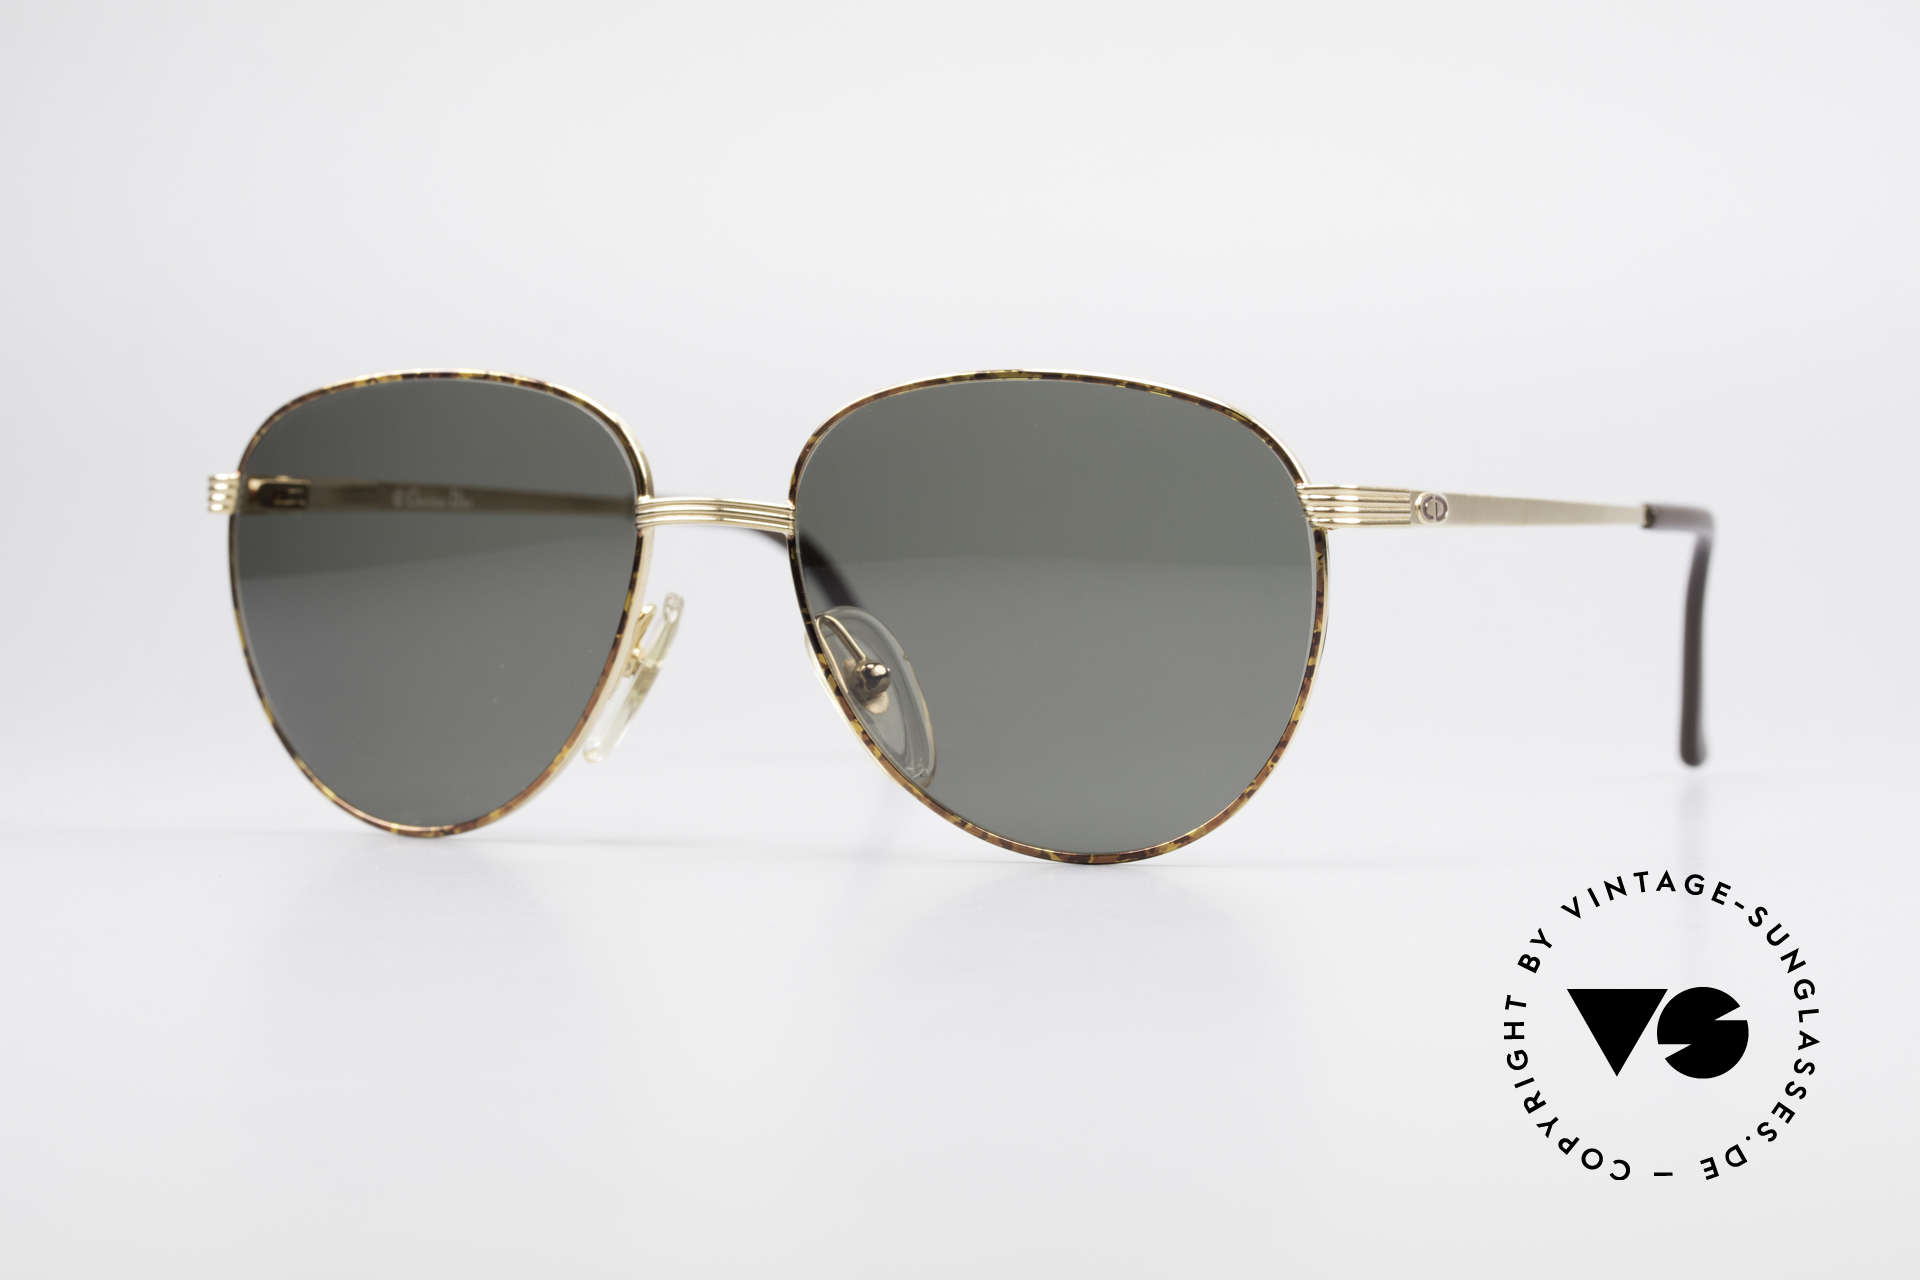 Christian Dior 2754 Round Panto Vintage Shades, round panto designer sunglasses by Christian Dior, Made for Men and Women